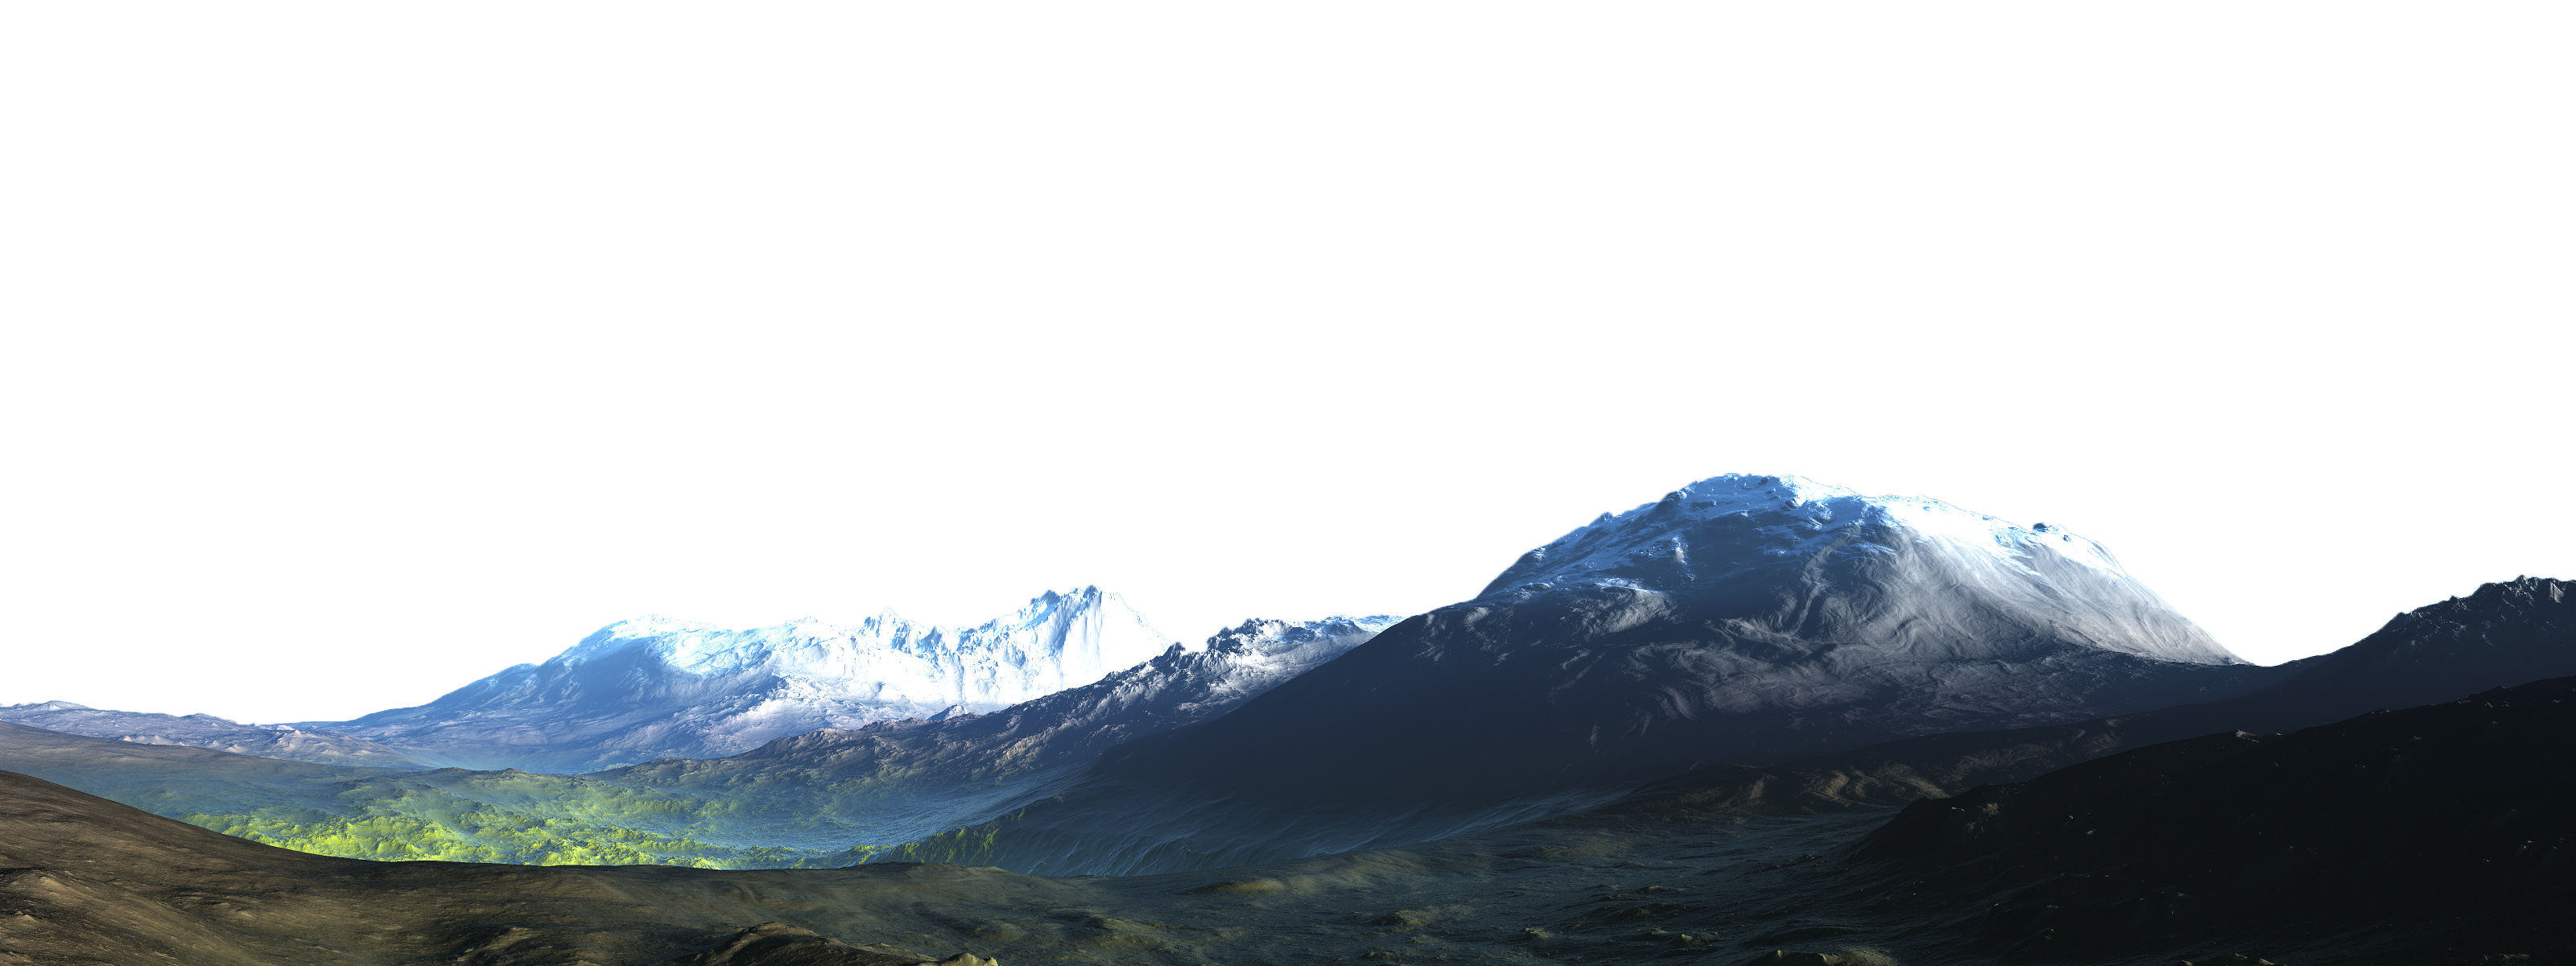 Mountain background png. Mountains images free download